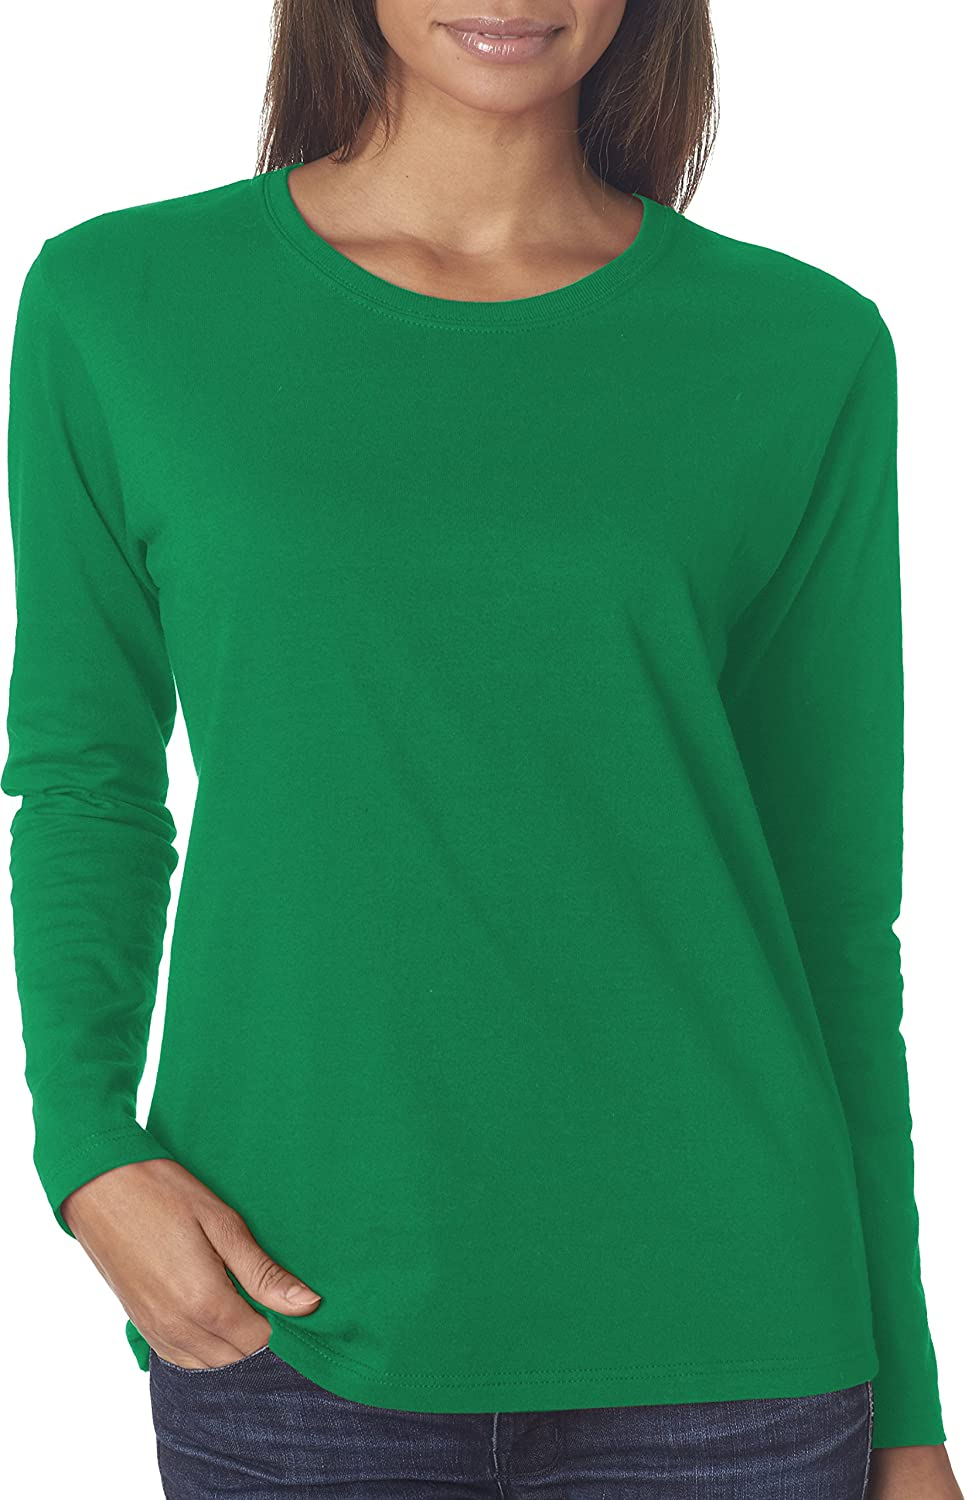 f2e8ef35a79 Amazon.com  Gildan G540L Ladies 5.3 oz. Heavy Cotton Missy Fit Long-Sleeve T -Shirt  Clothing